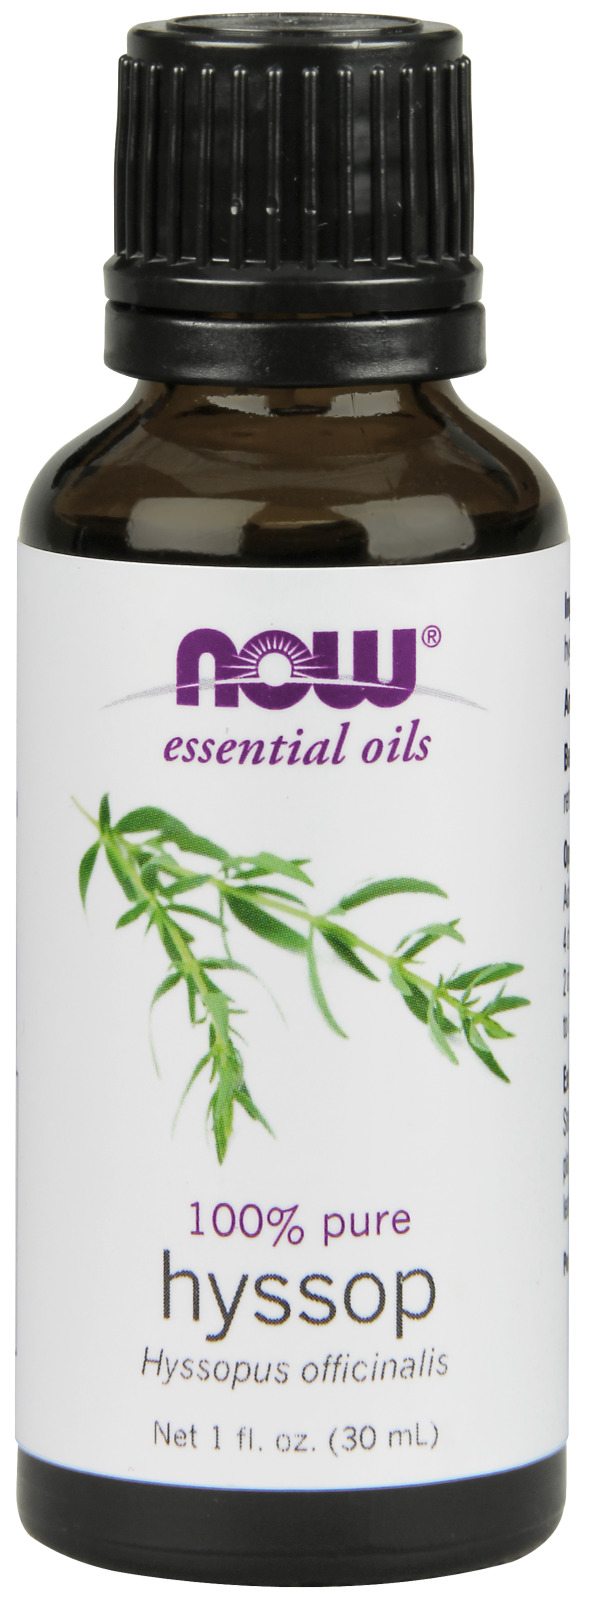 Hyssop Oil 1 fl oz (30 ml) by NOW